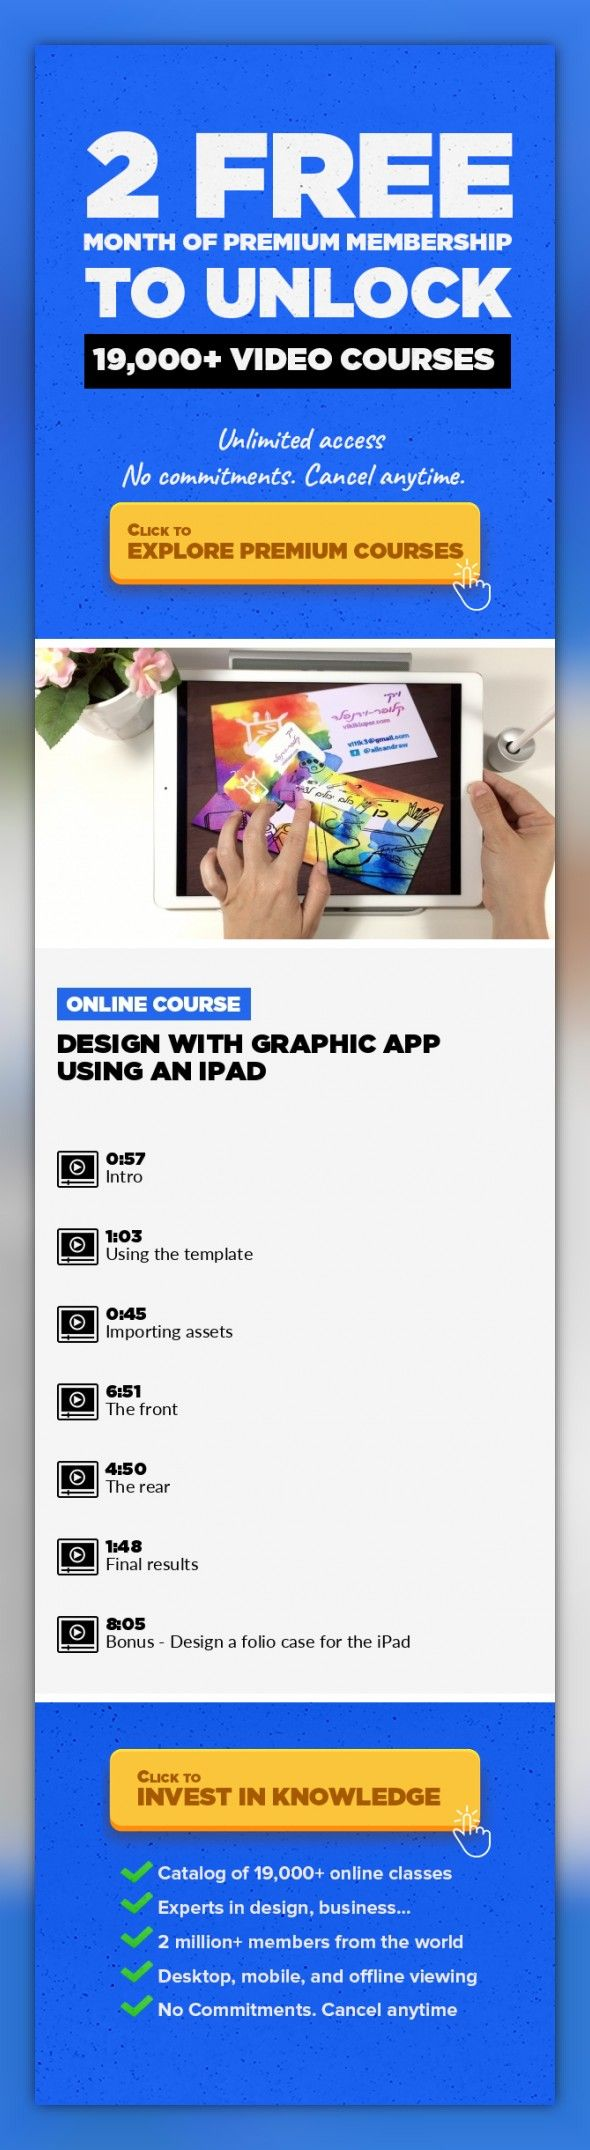 Design with graphic app using an ipad illustration ios graphic design with graphic app using an ipad illustration ios graphic design ipad creative print design vector art vector graphics business card reheart Gallery